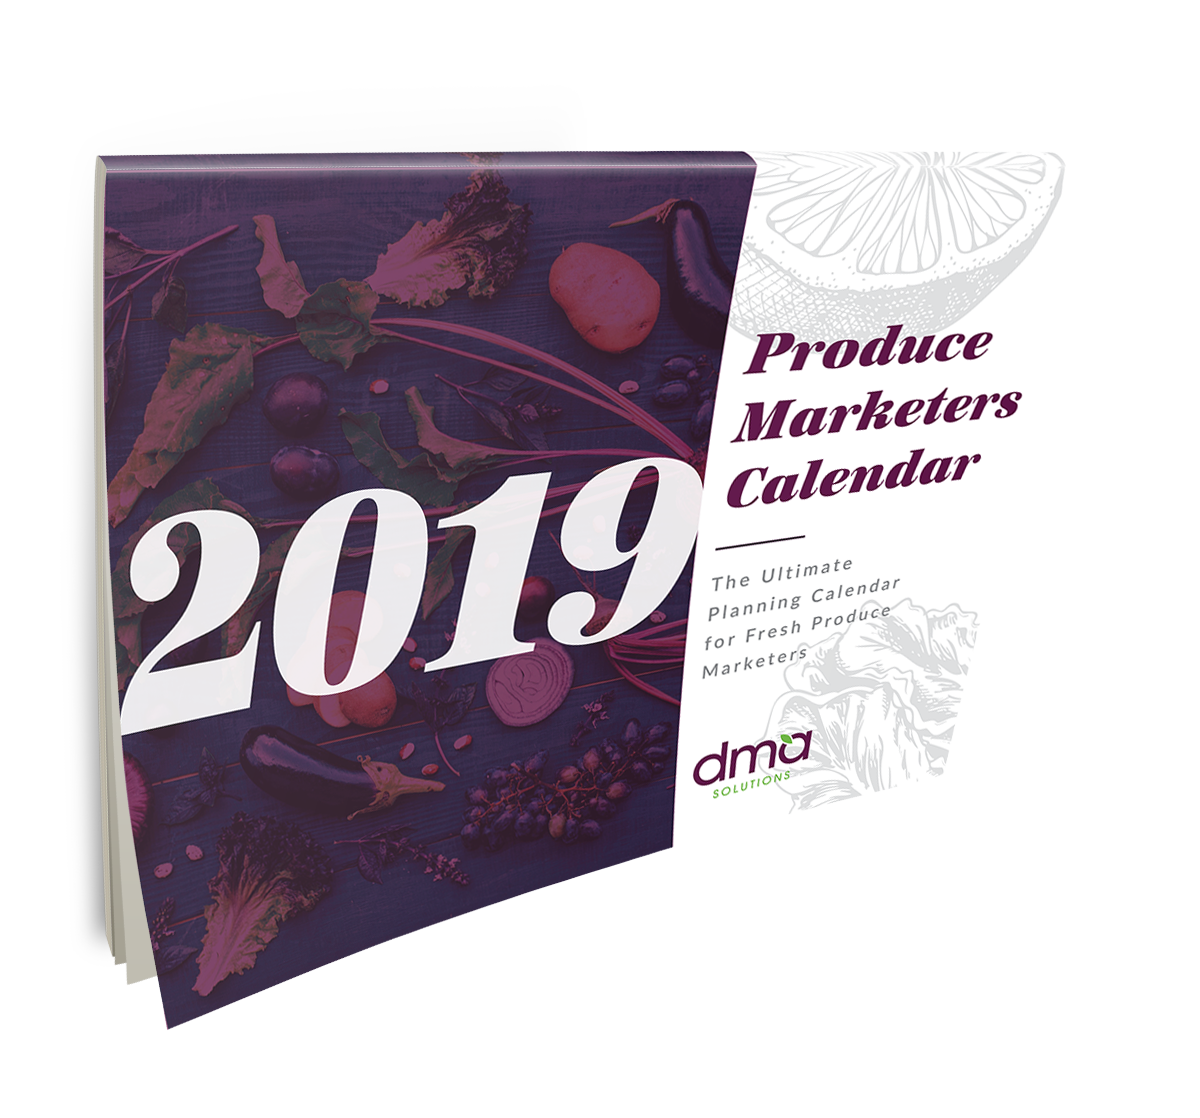 2019 DMA Produce Marketers Calendar